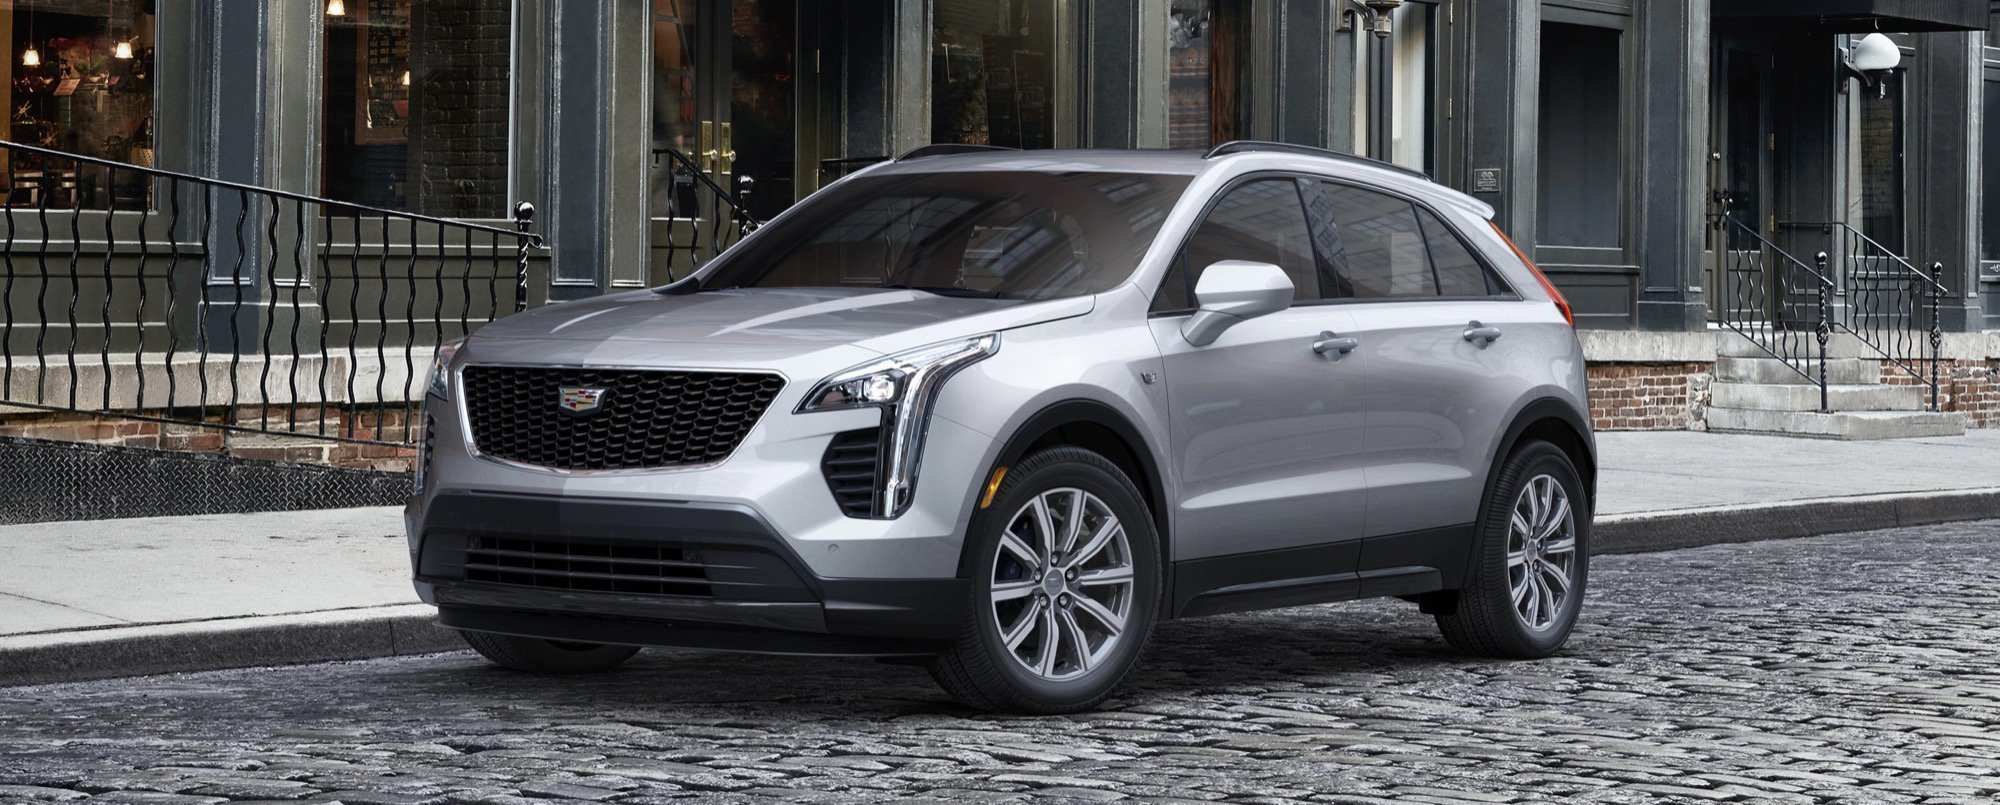 41 Best Cadillac Xt4 2020 Overview